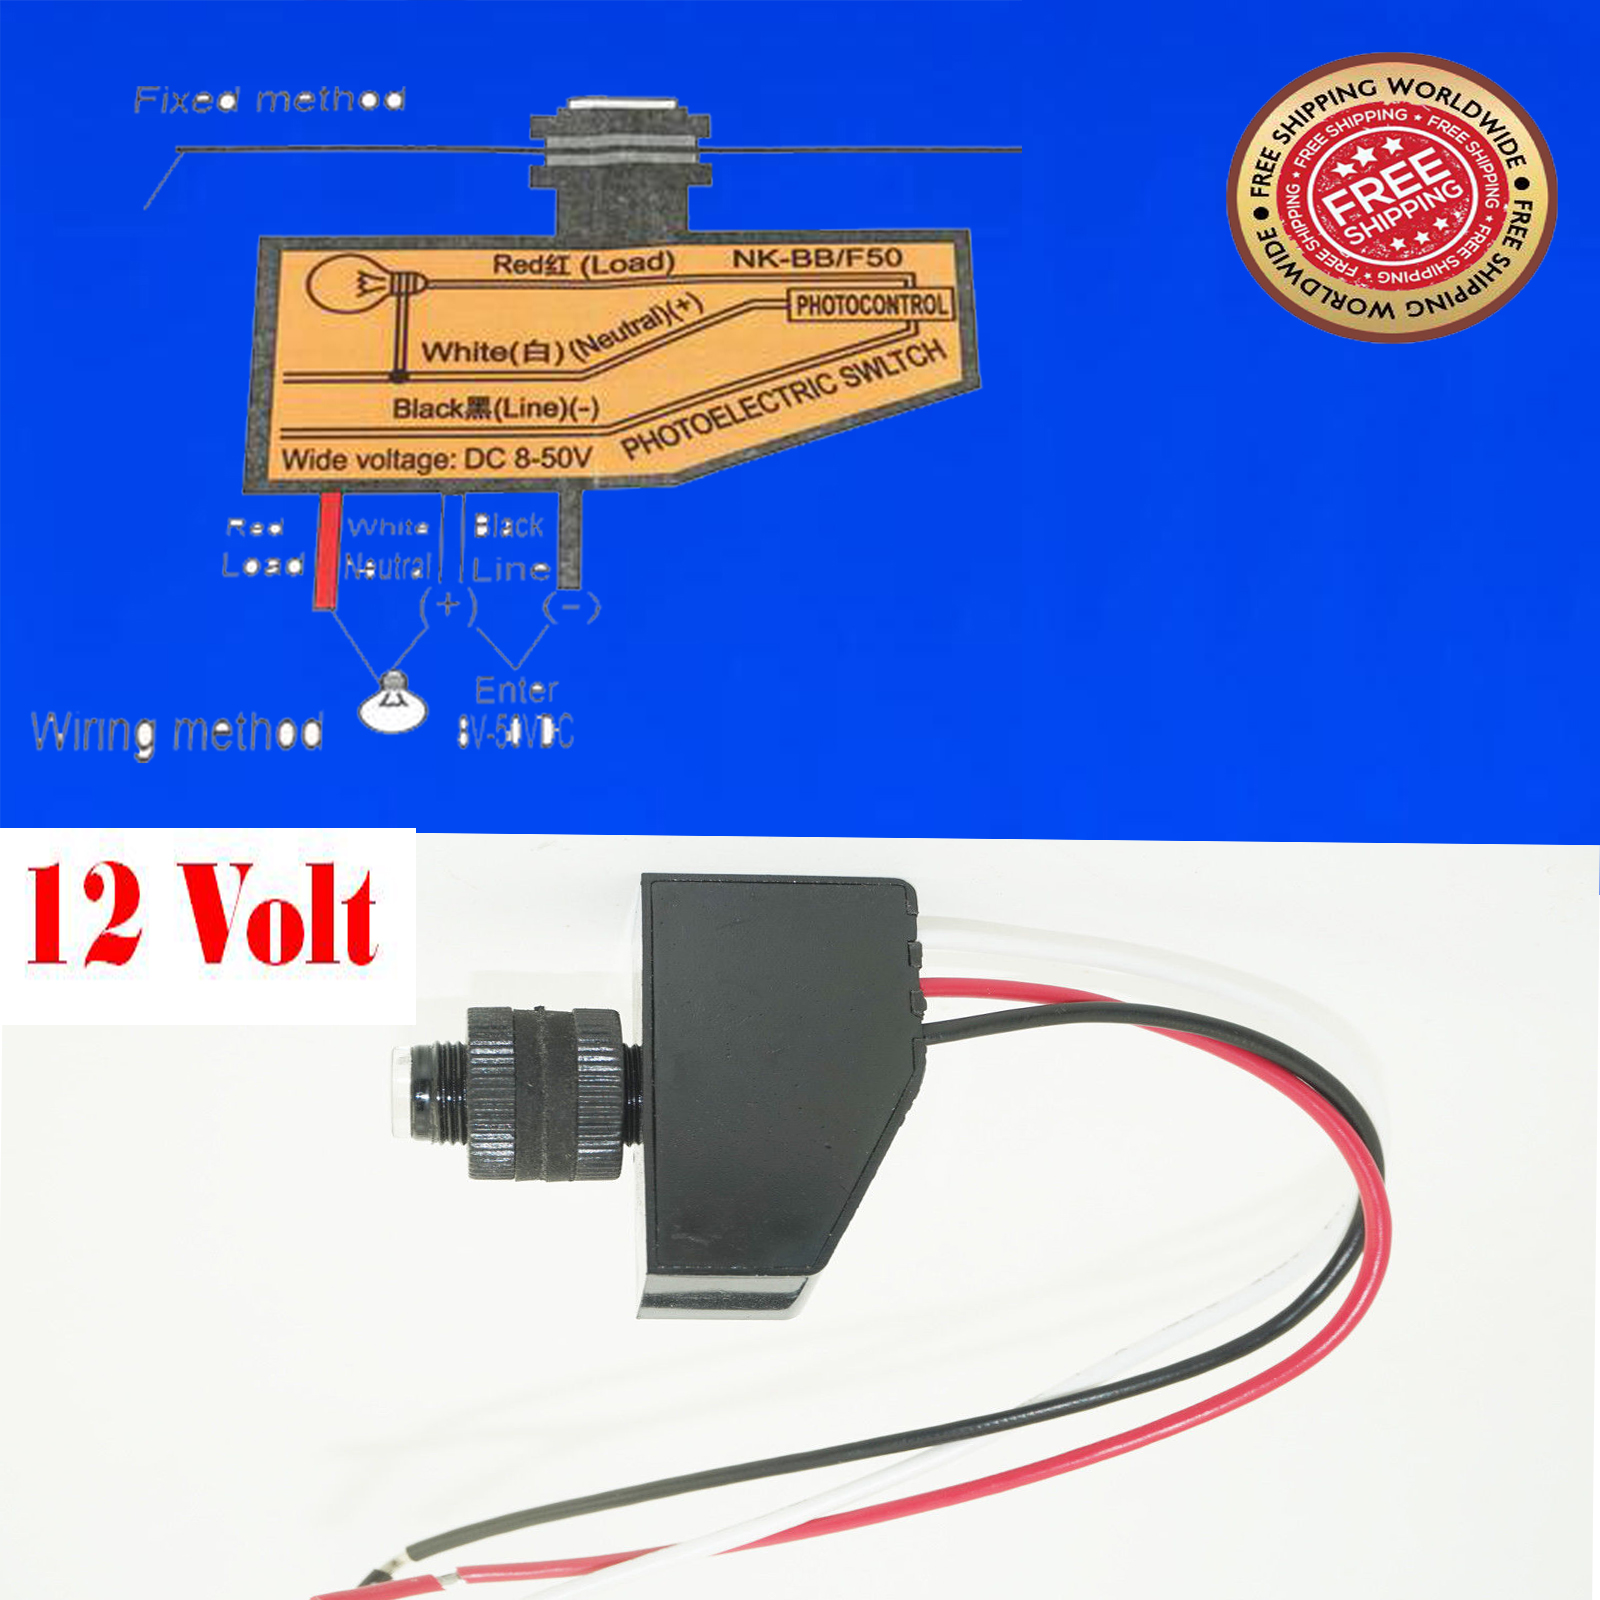 12 Volt Button Style Dusk-to-dawn Photocell Sensor